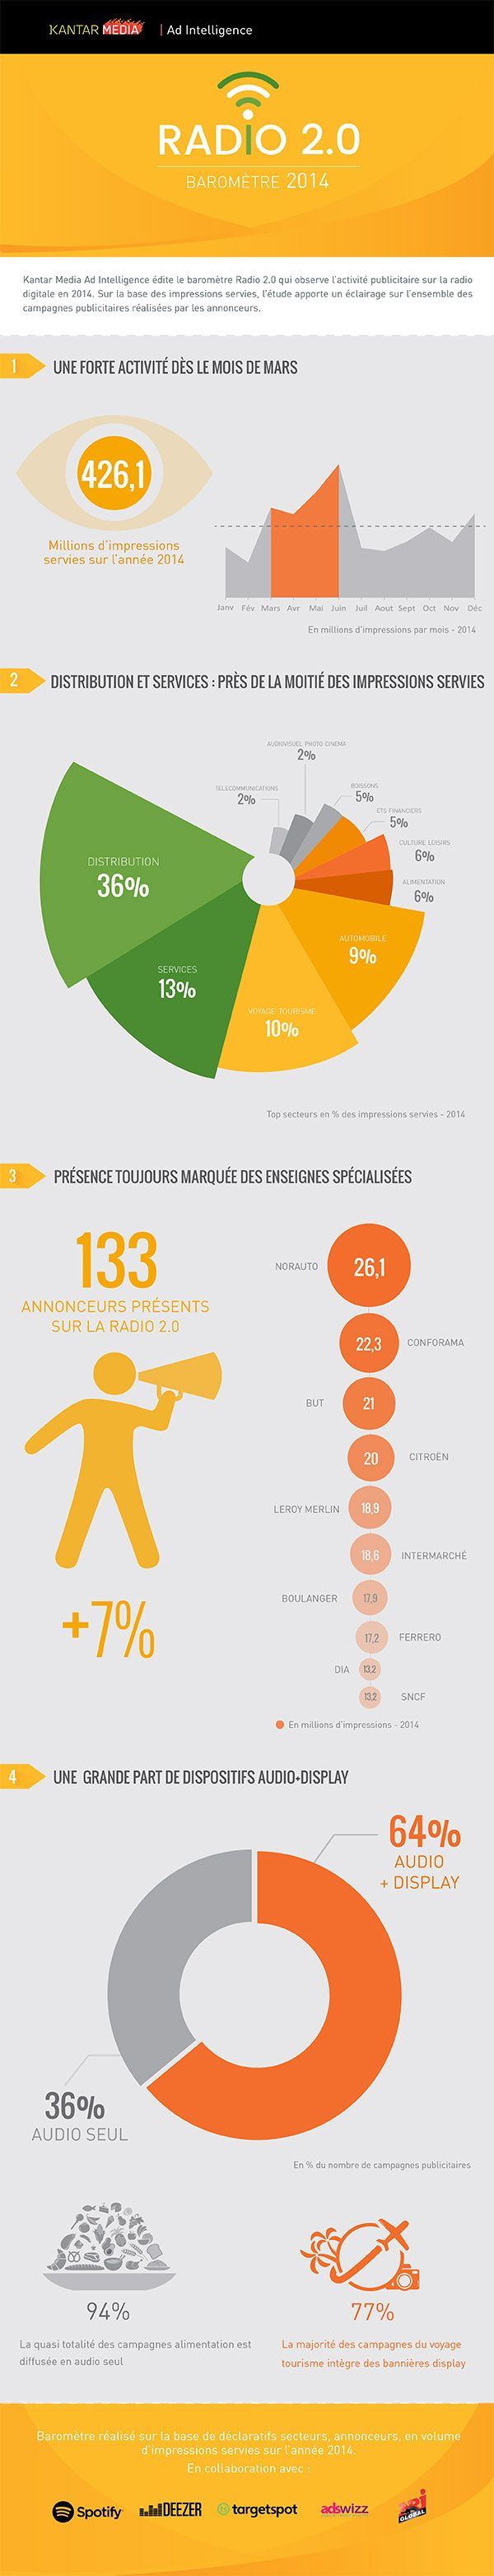 Barometer Radio 2014 in france, an infographic about radio advertisement from Kantar Media